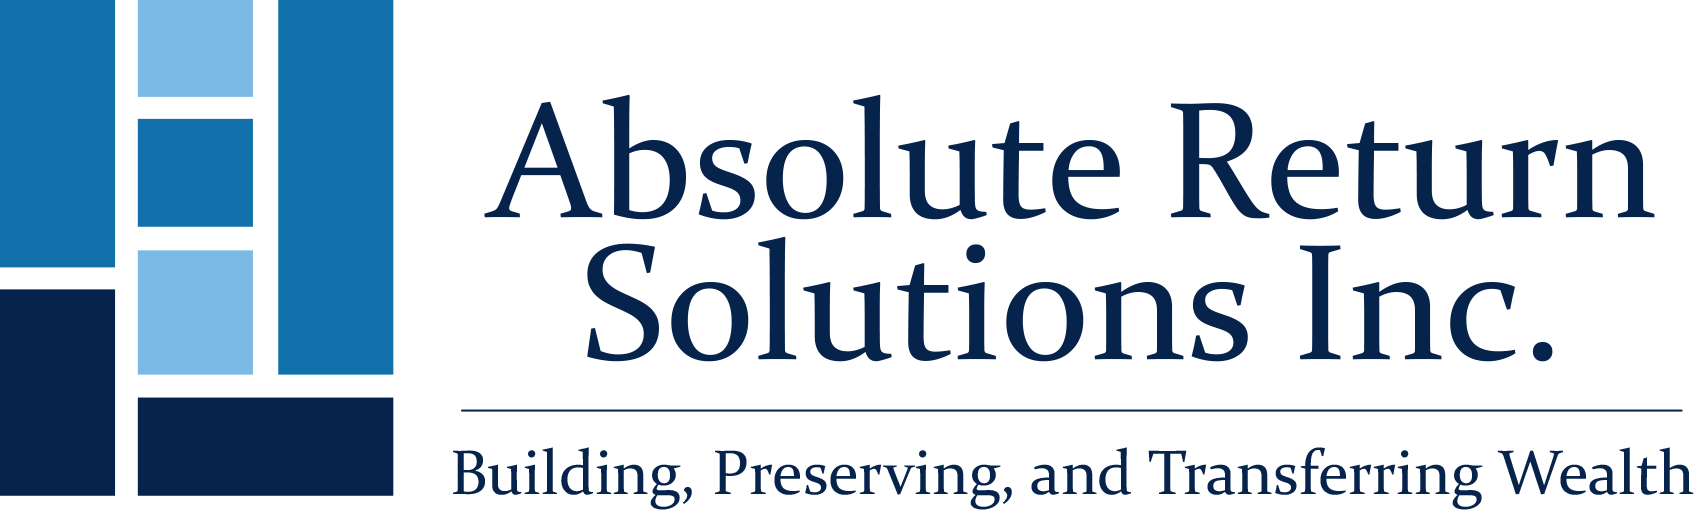 Absolute Return Solutions - With Offices in Washington & Colorado